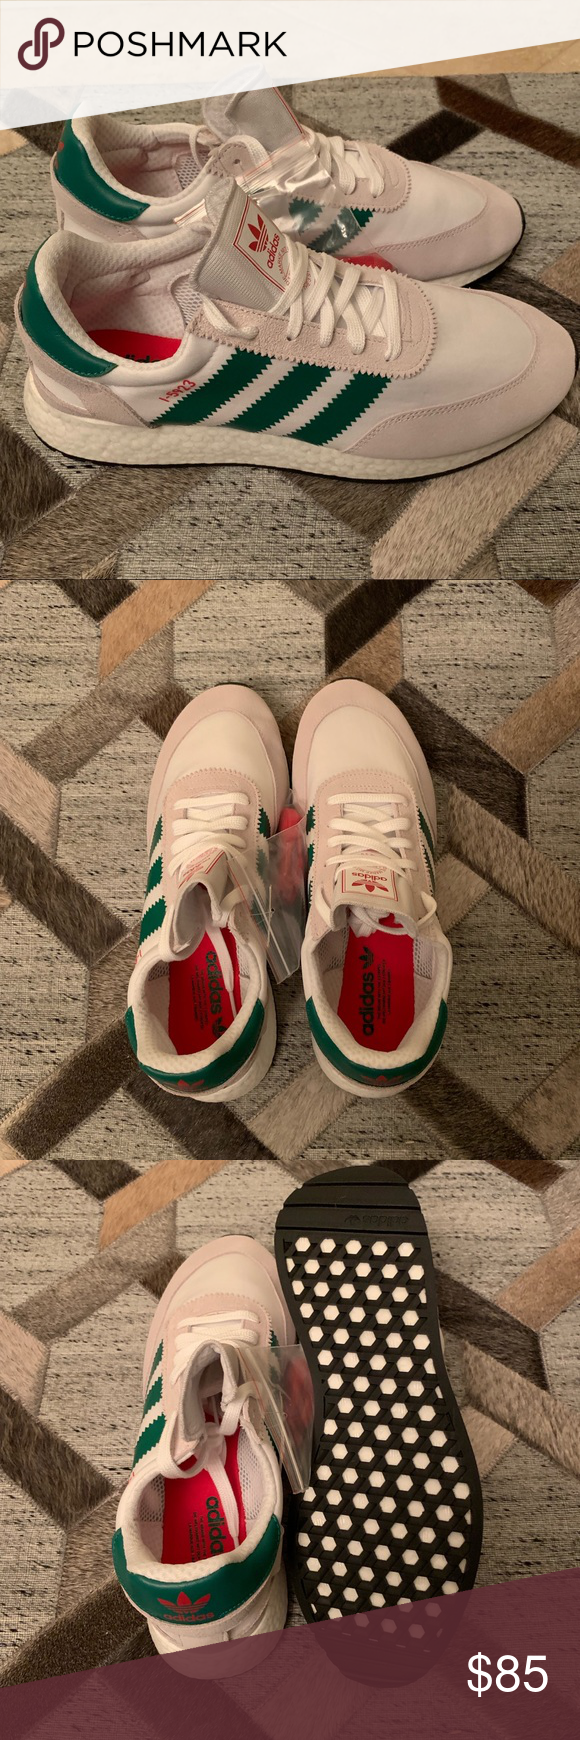 0ec2dbfe92fee3 Adidas Originals I-5923 New 12 Adidas Originals I-5923 Shoes Size 12 New in  box. Style  D96818 Color  Cloud White Bold Green Collegiate Red Lace  Closure ...